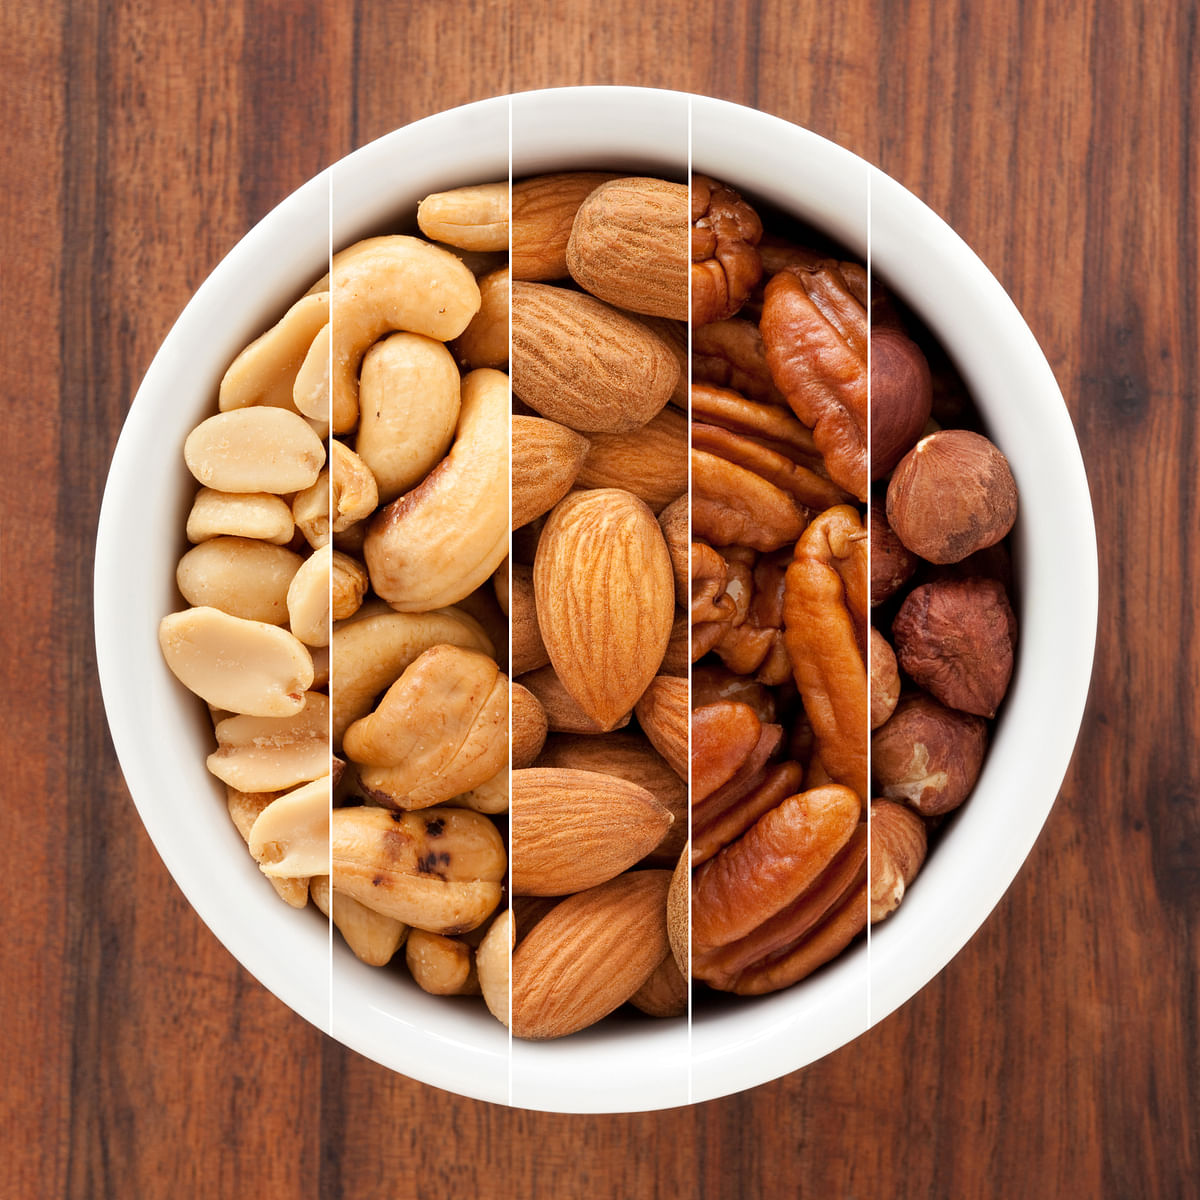 Cashews and almonds are full of zinc, whilst walnuts are high in omega-3.